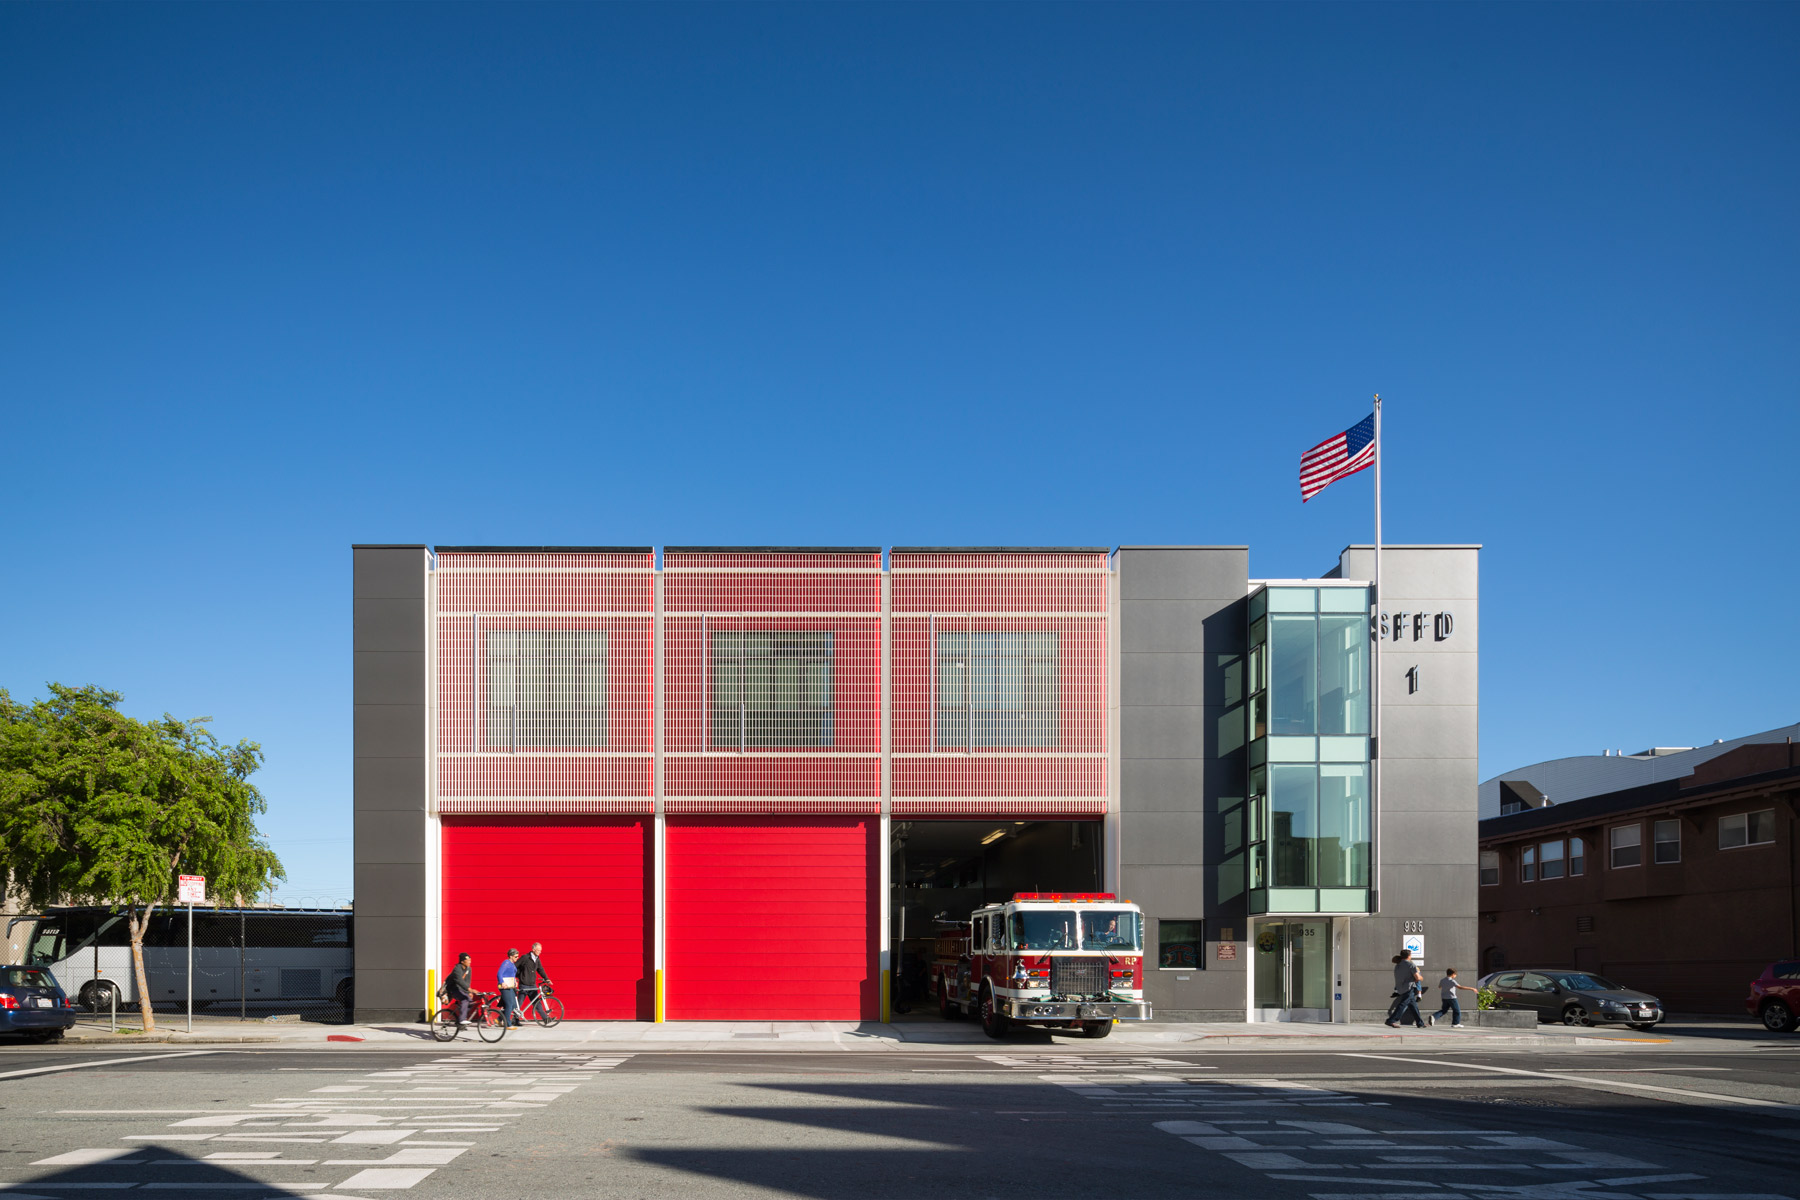 Firehouse No. 1 is a joint venture between the San Francisco Museum of Modern Art and the City of San Francisco- it is one of the most sustainable and energy-efficient firehouses in the U.S.